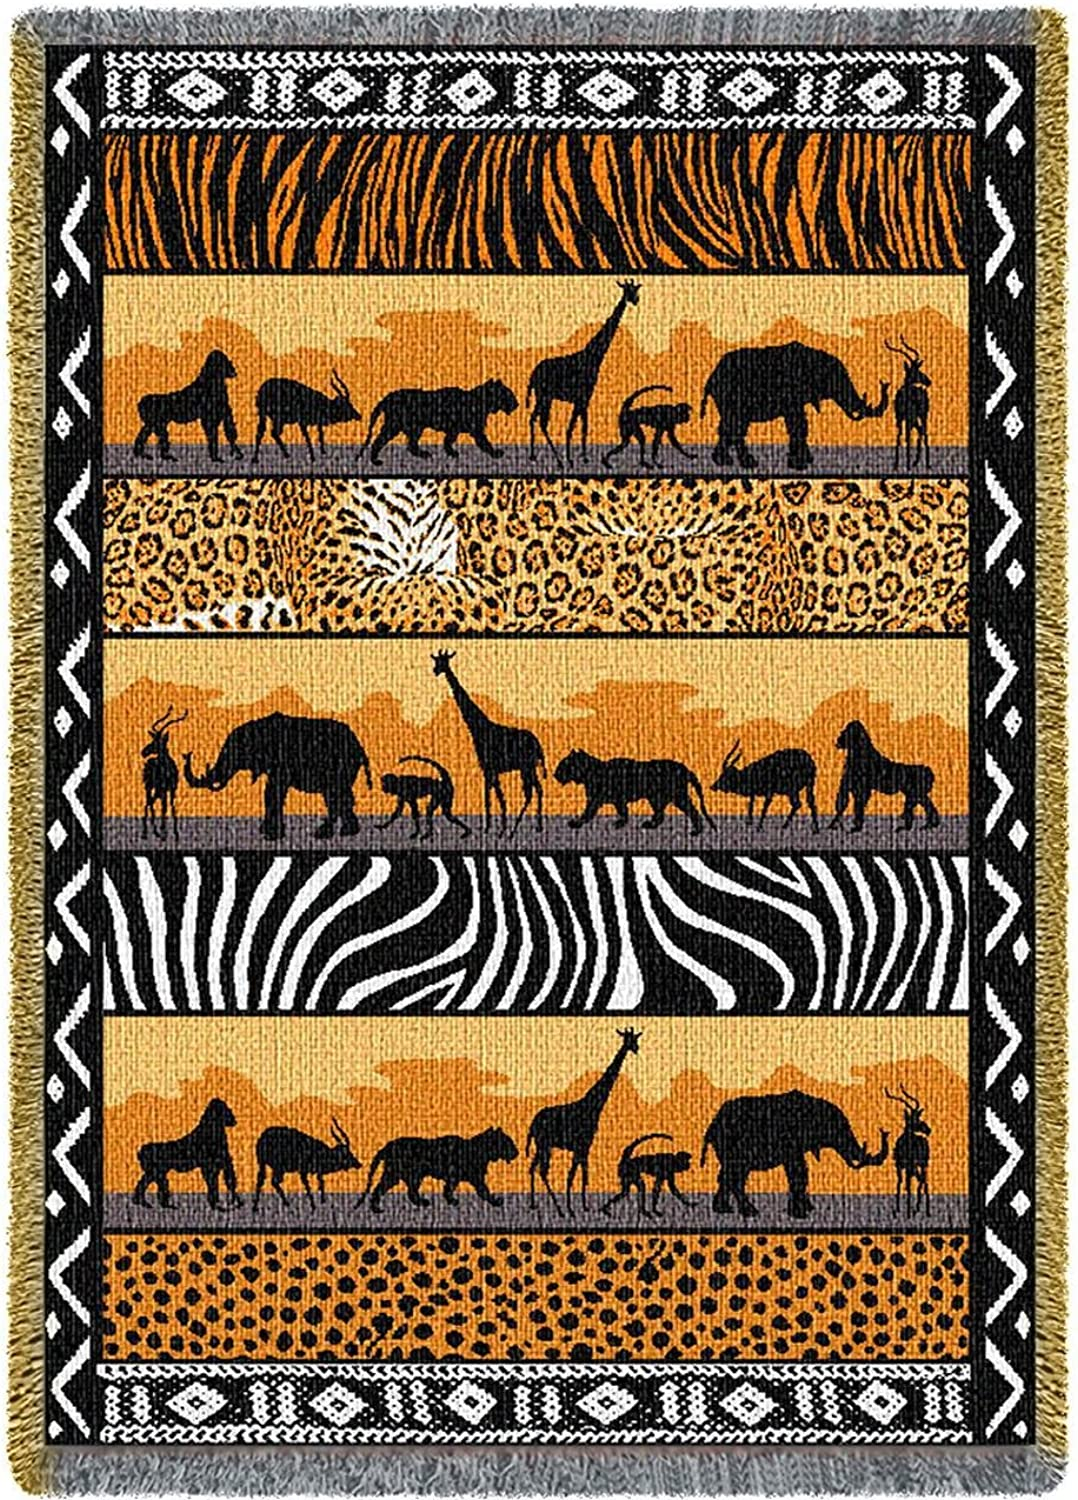 Pure Country Weavers in The Wild African Safari Decor Woven Throw Blanket with Fringe by Artisan Textile Mill USA Made Size 70x50 Cotton Woven to Last a Lifetime